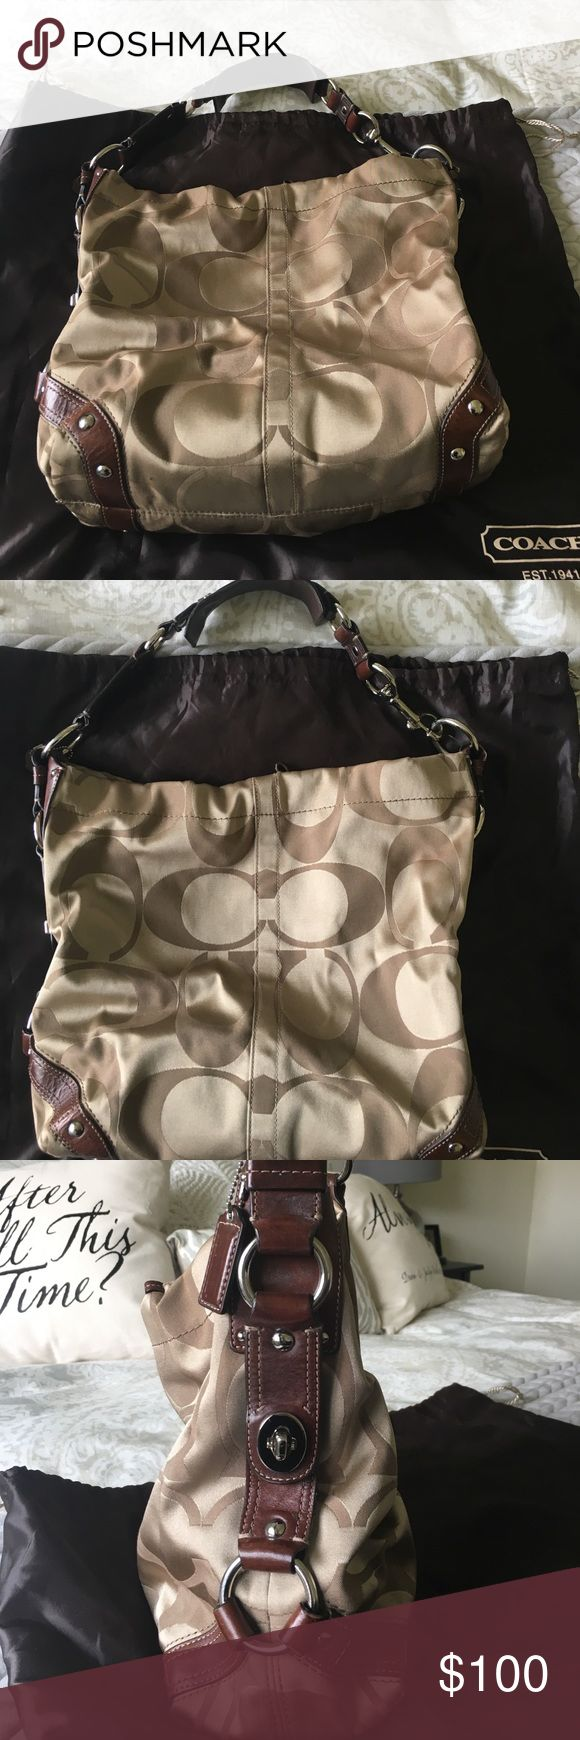 Tan coach satchel purse Tan coach satchel bag with brown leather straps and metal hardware. One small mark on the bottom of the bag shown in the pictures. Coach Bags Shoulder Bags